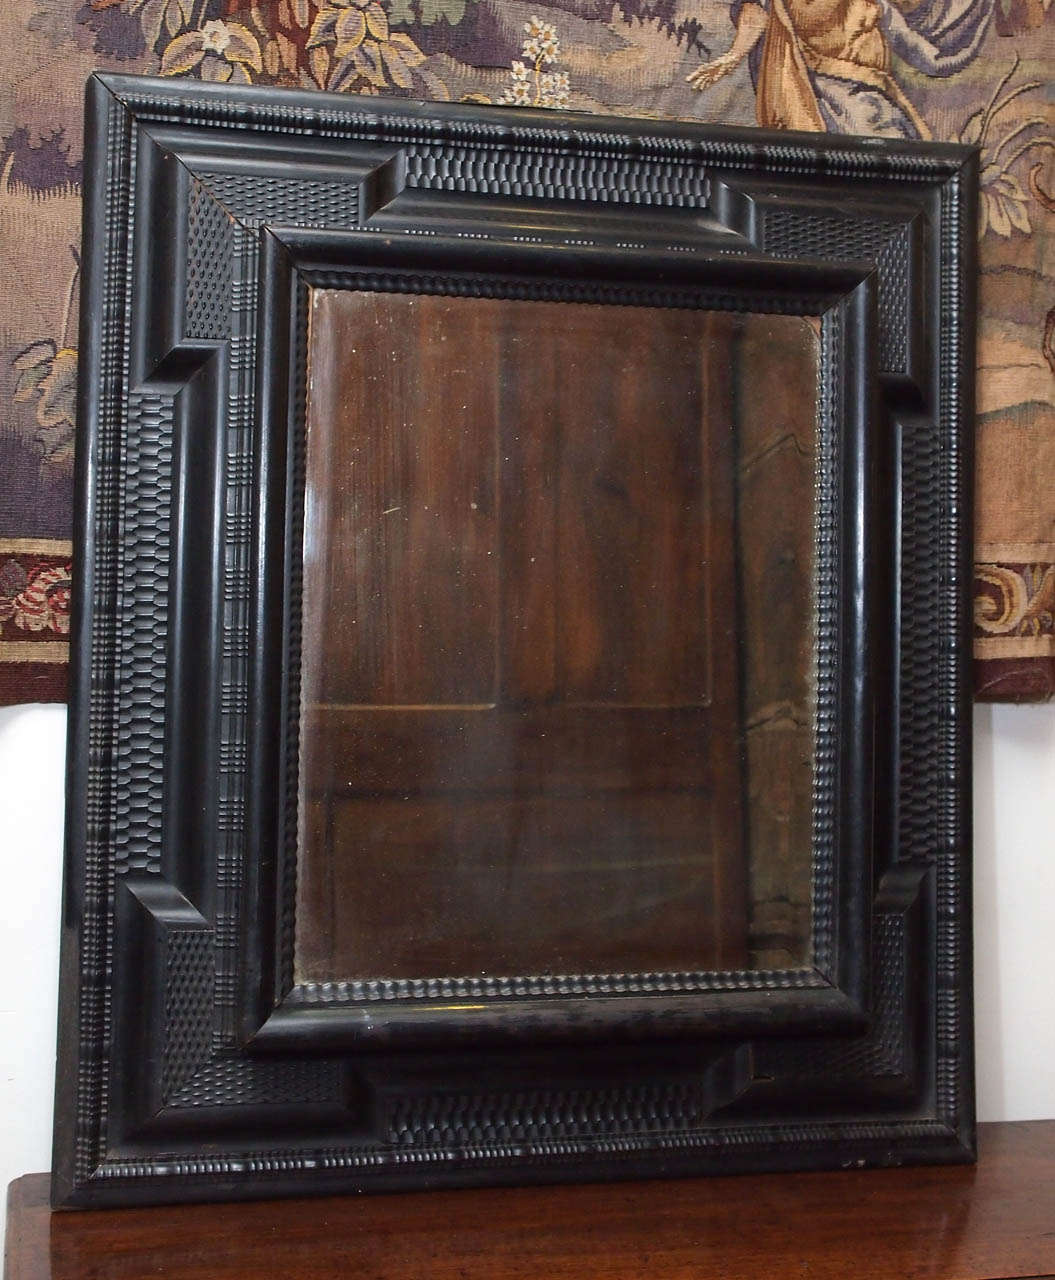 Dutch 17th Century Hand Beveled Mirrored Glass In Frame At